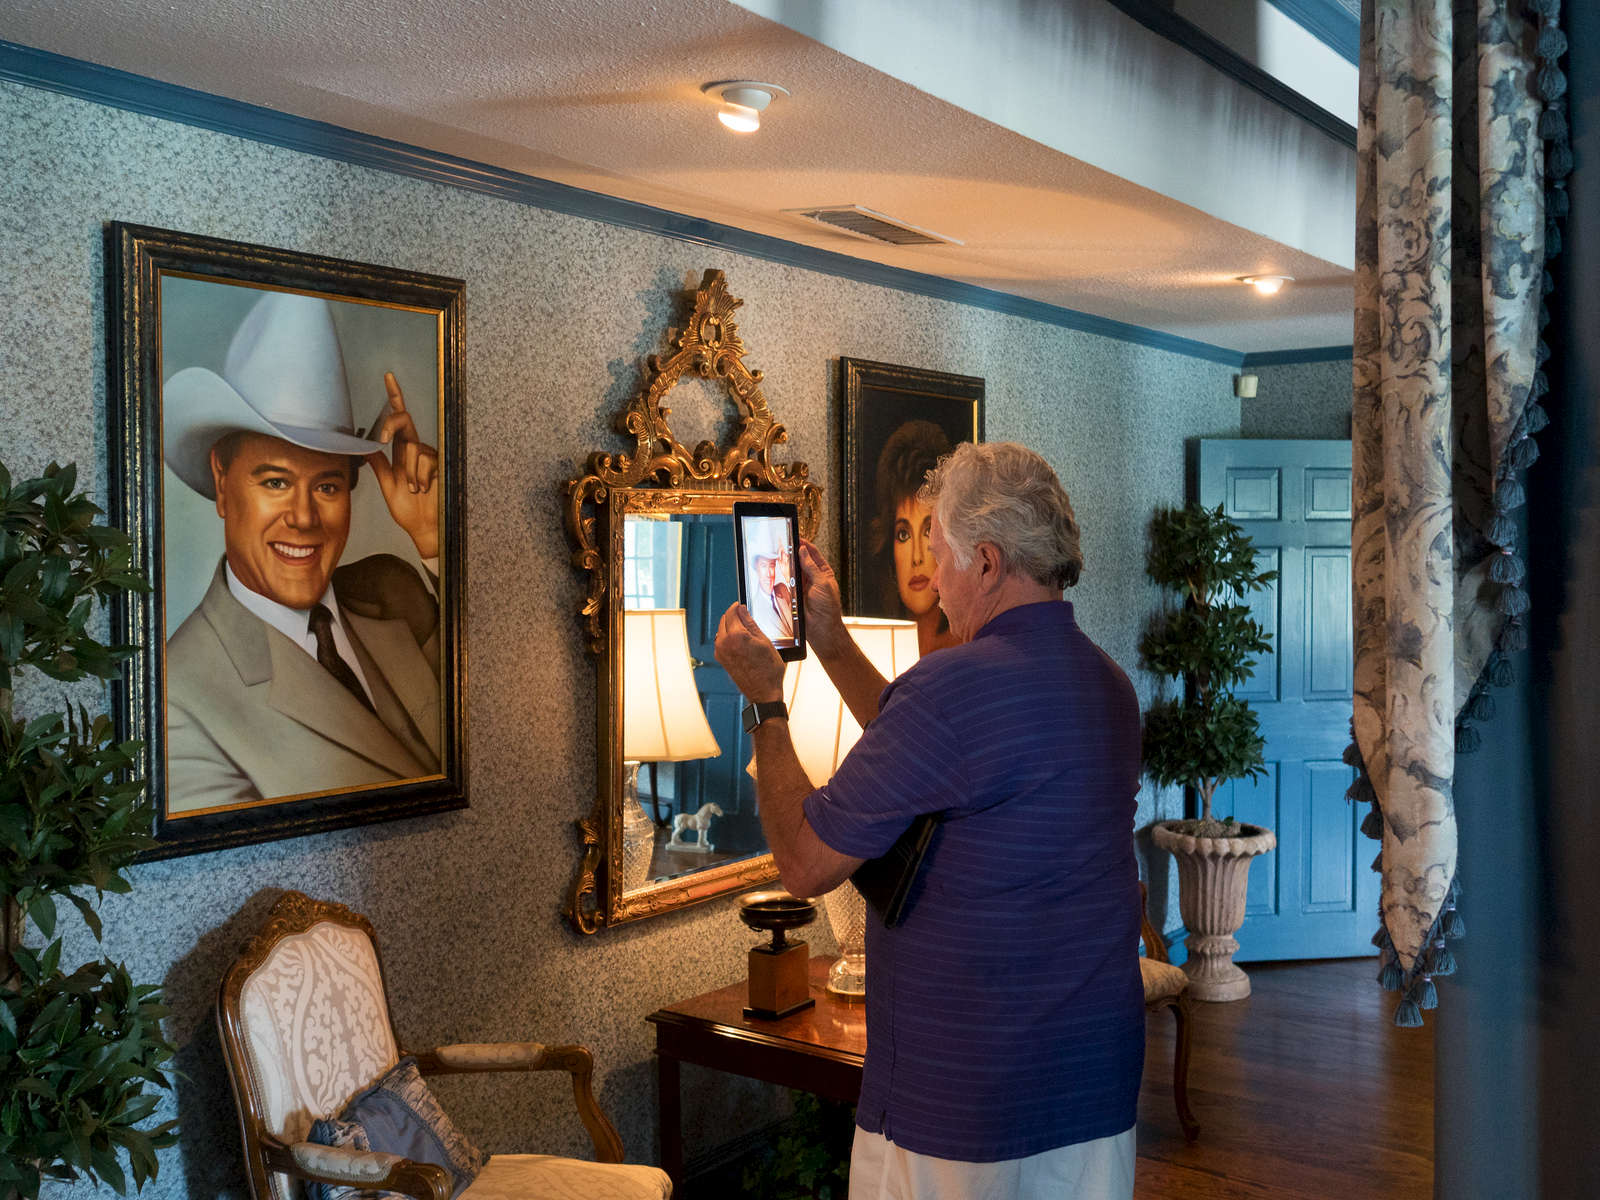 A visitor to the Southfork ranch takes a photograph of a painting of J. R. Ewing, one of the main characters from the TV show, Dallas, that aired from April 2, 1978, to May 3, 1991, on CBS. The series revolves around a wealthy and feuding Texan family, the Ewings, who own the independent oil company Ewing Oil and the cattle-ranching land of Southfork.Dallas is a major city in Texas and is the largest urban center of the fourth most populous metropolitan area in the United States. The city ranks ninth in the U.S. and third in Texas after Houston and San Antonio. The city's prominence arose from its historical importance as a center for the oil and cotton industries, and its position along numerous railroad lines.For two weeks in the summer of 2015, photographer Peter Dench visited Dallas to document the metroplex in his epic reportage, DENCH DOES DALLAS.Photographed using an Olympus E-M5 Mark II©Peter Dench/Getty Images Reportage